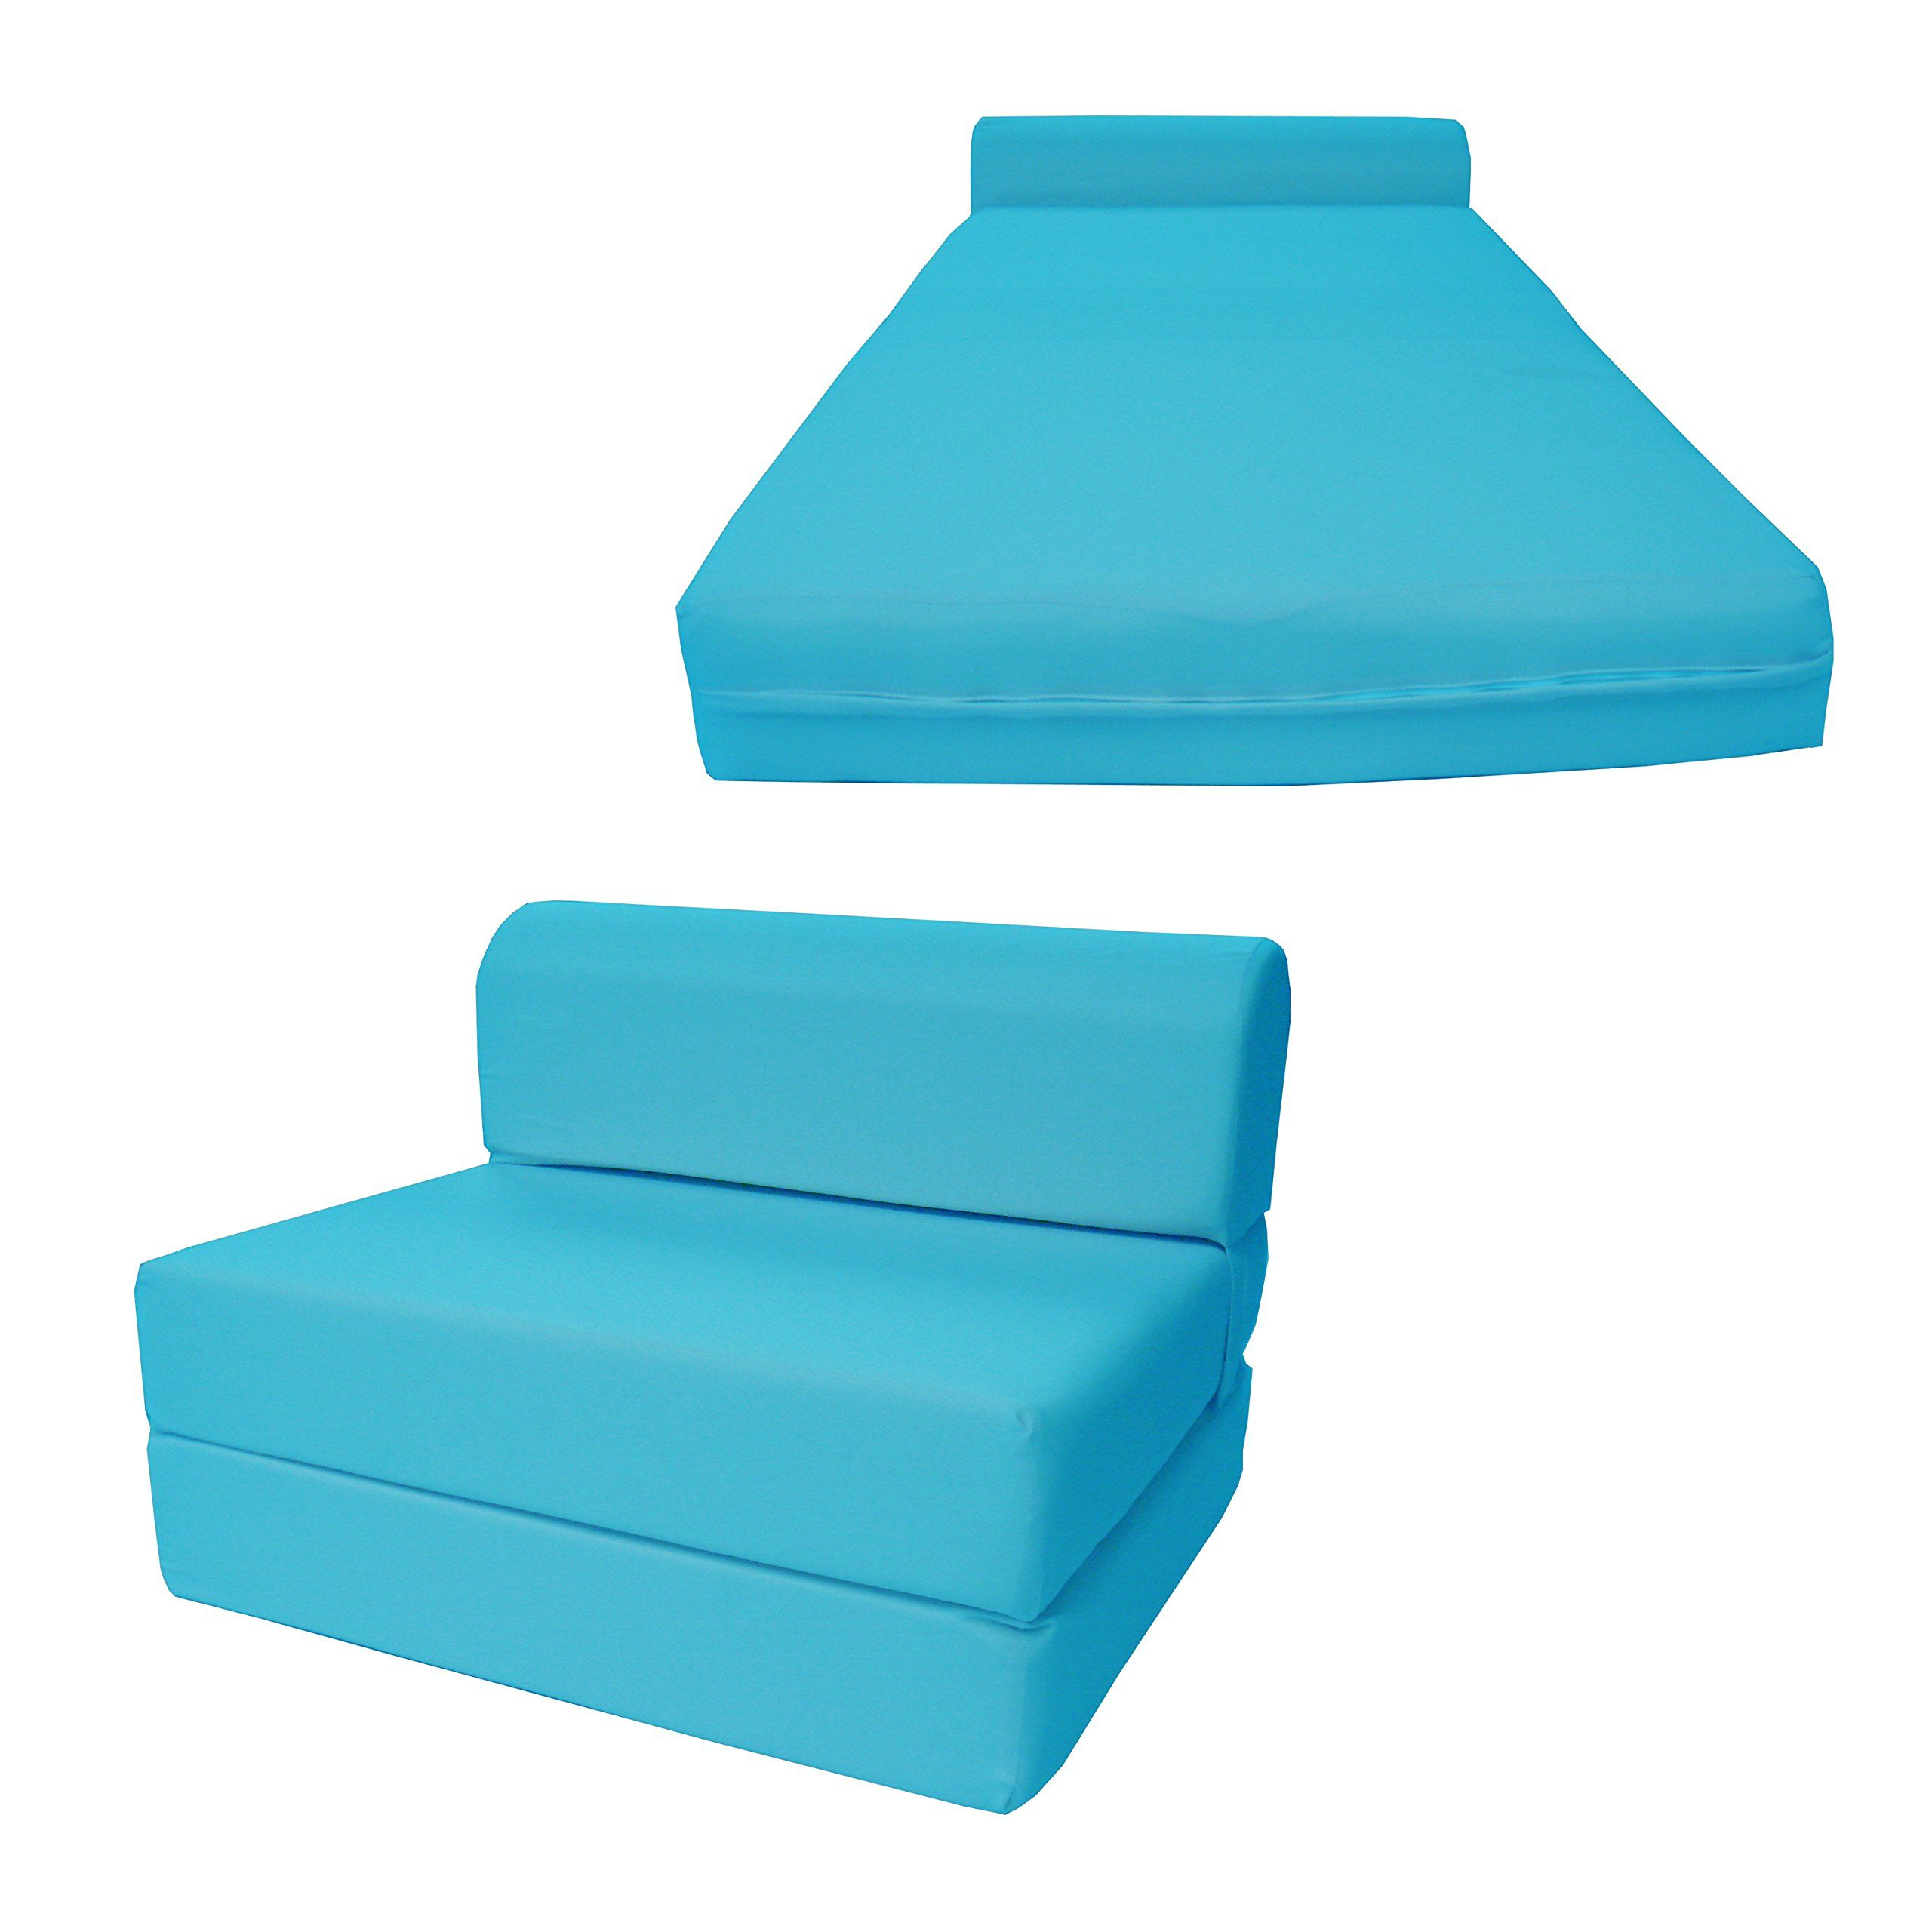 DandD Futon Furniture Turquoise Sleeper Chair Folding Foam